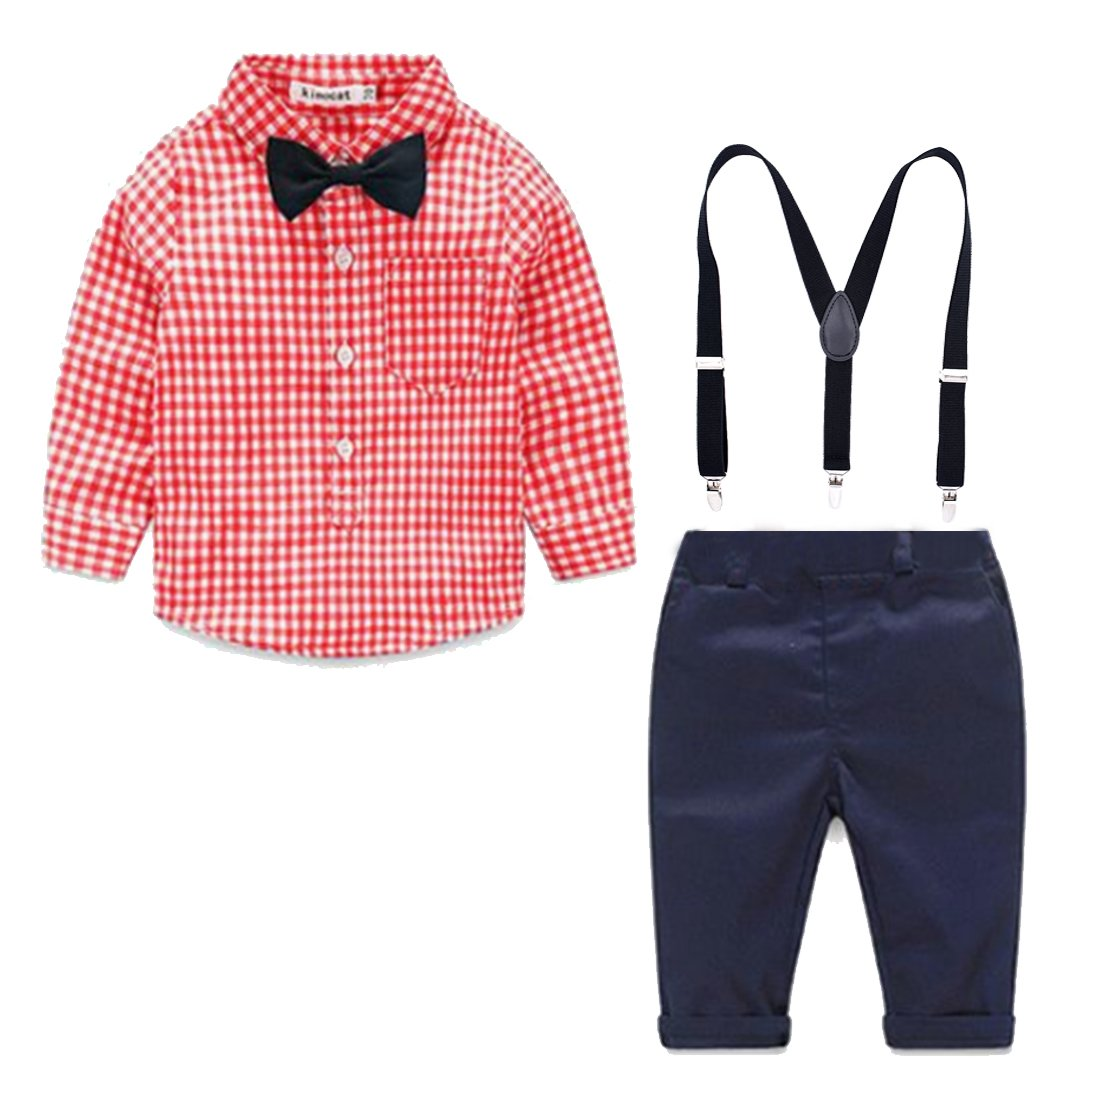 Simple /& Elegant Suspender and Bow Tie Set for Boys Girls Children Pink PD